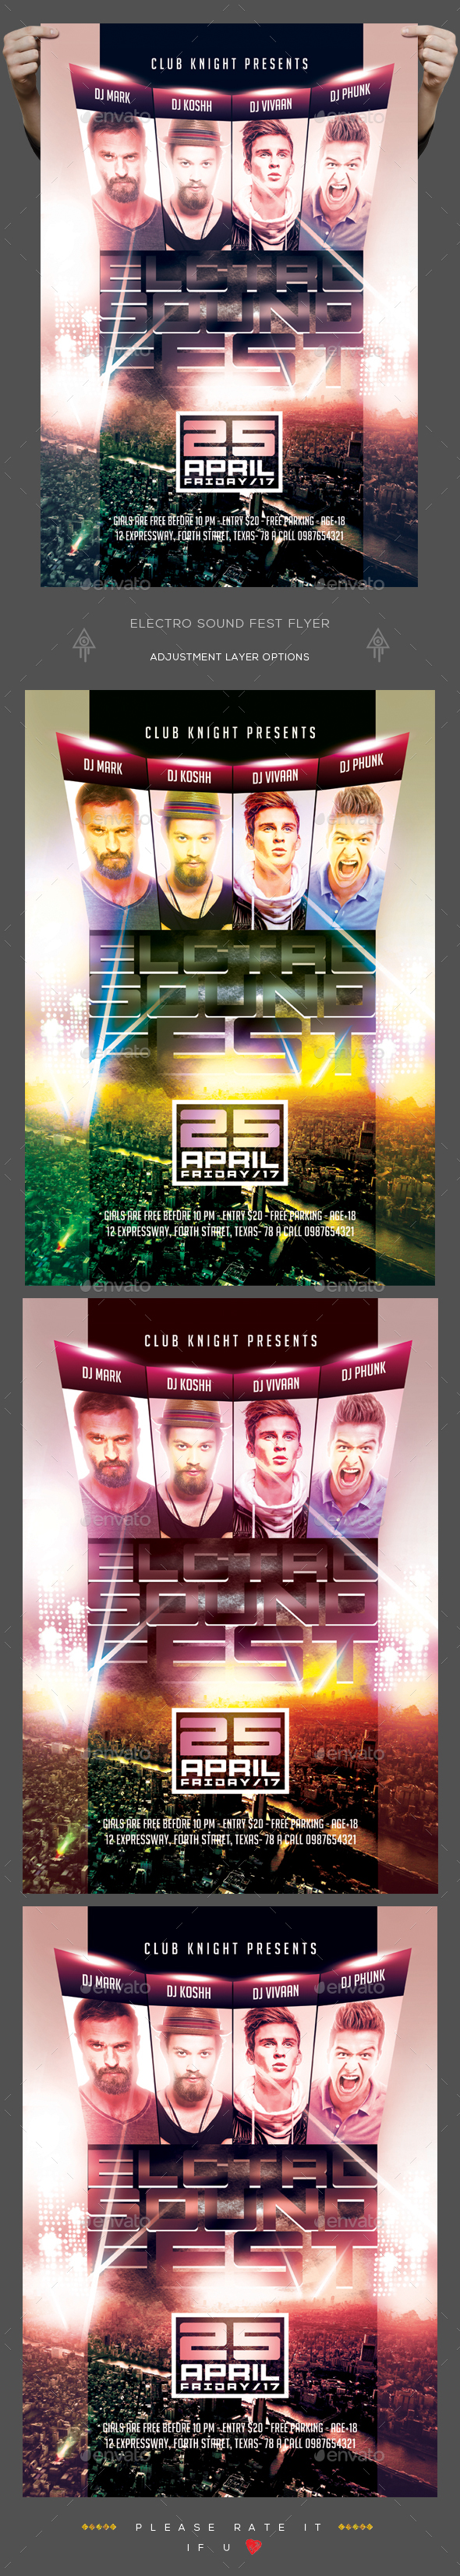 Electro Sound Fest Flyer - Clubs & Parties Events